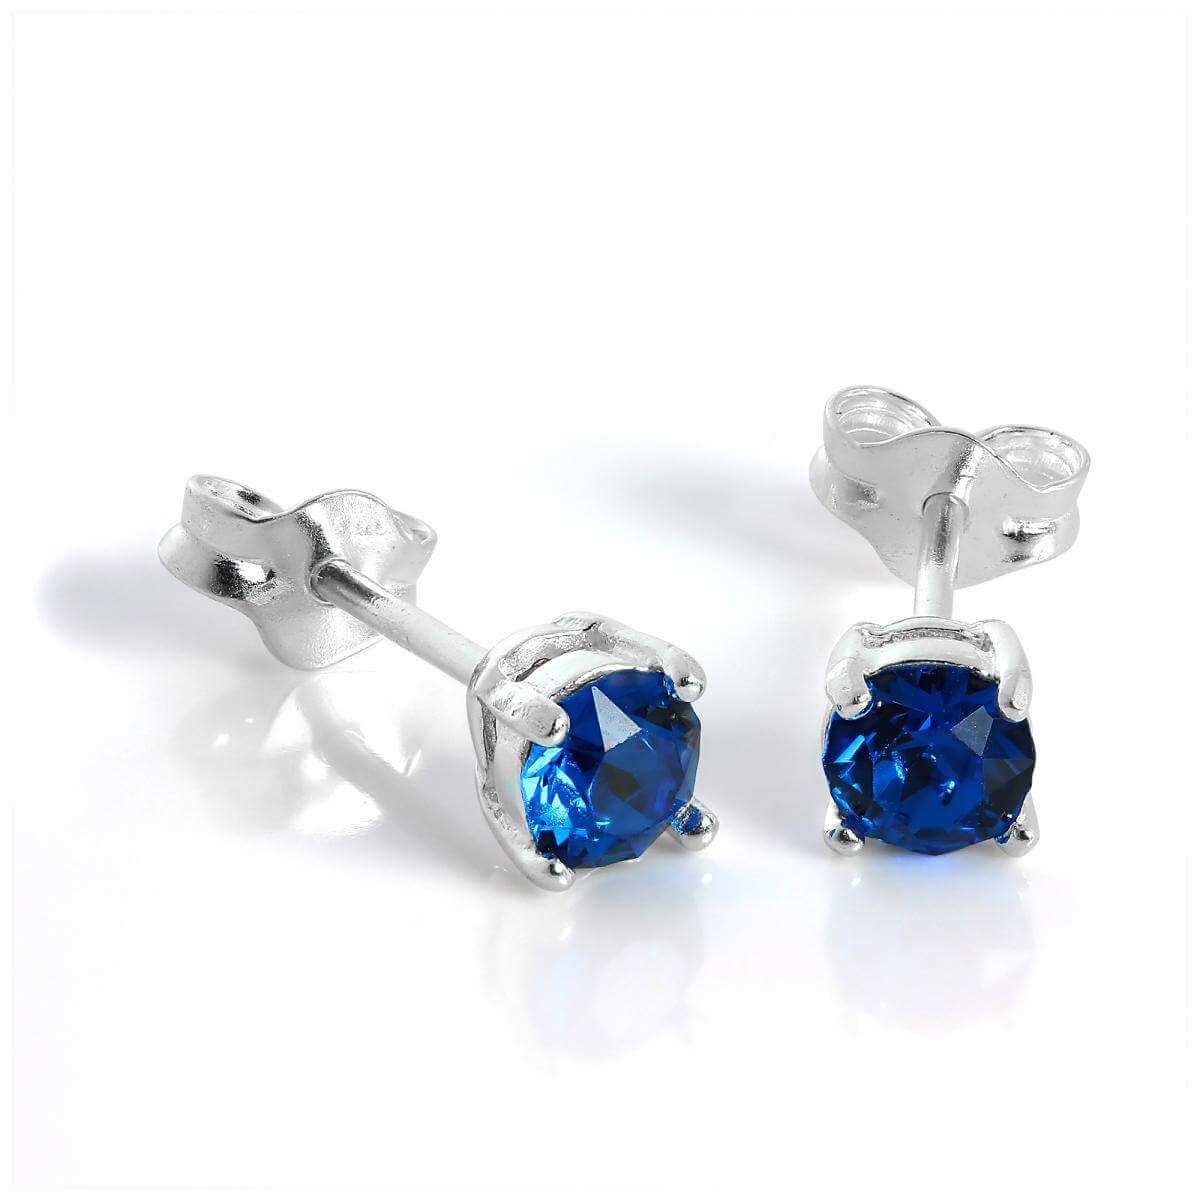 Sterling Silver & 4mm Square Blue Capri Quartz Stud Earrings